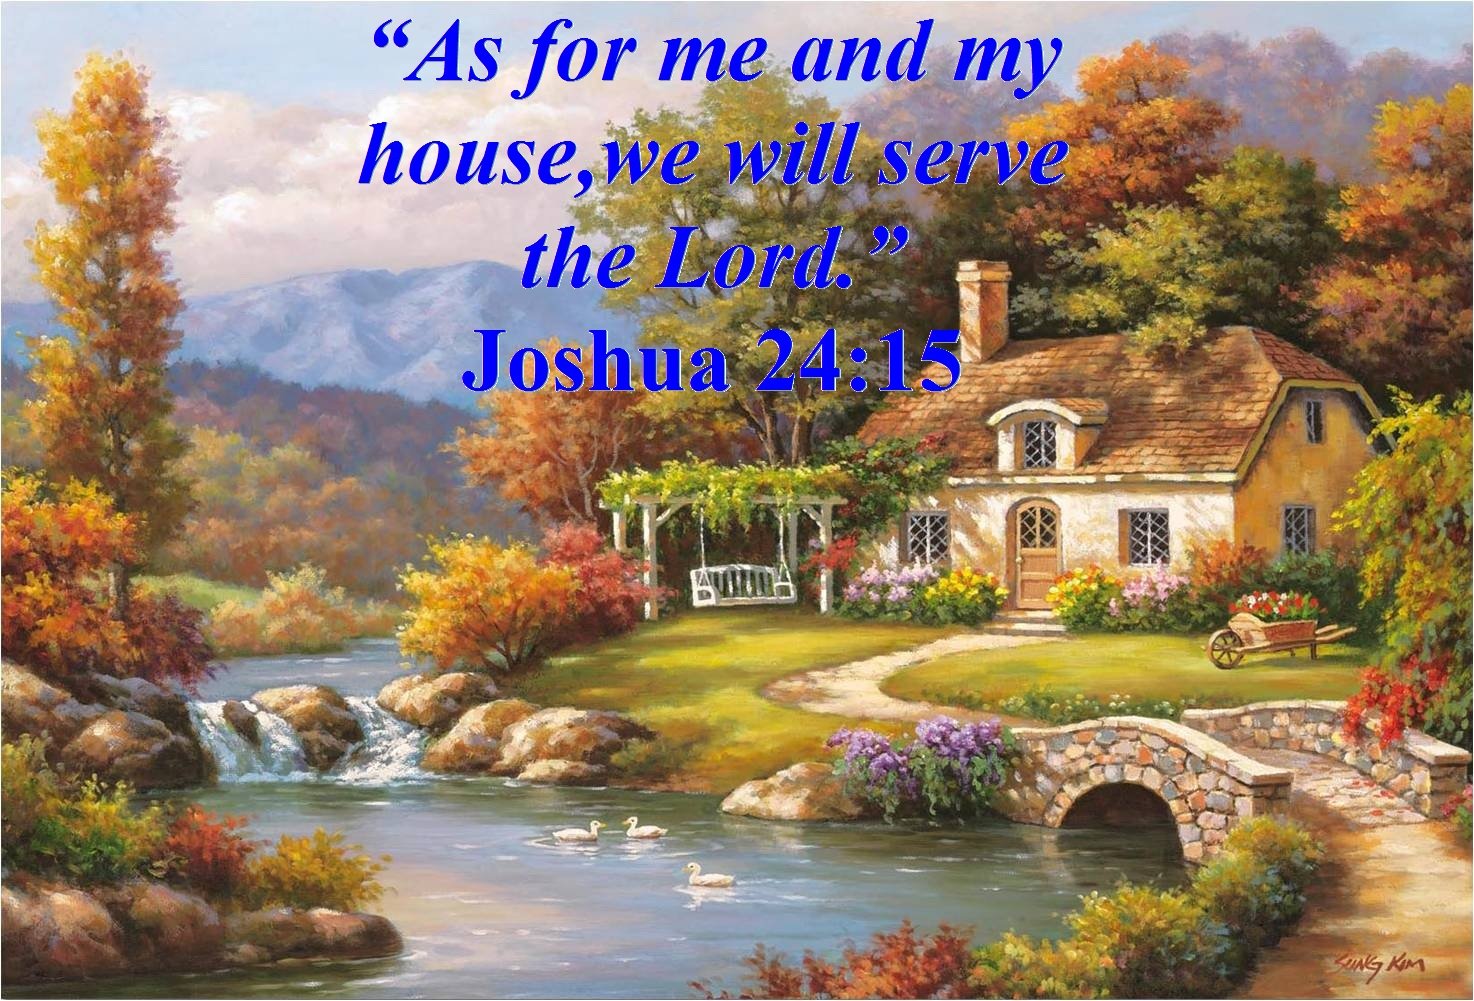 As For Me And My House We Will Serve The Lord Joshua